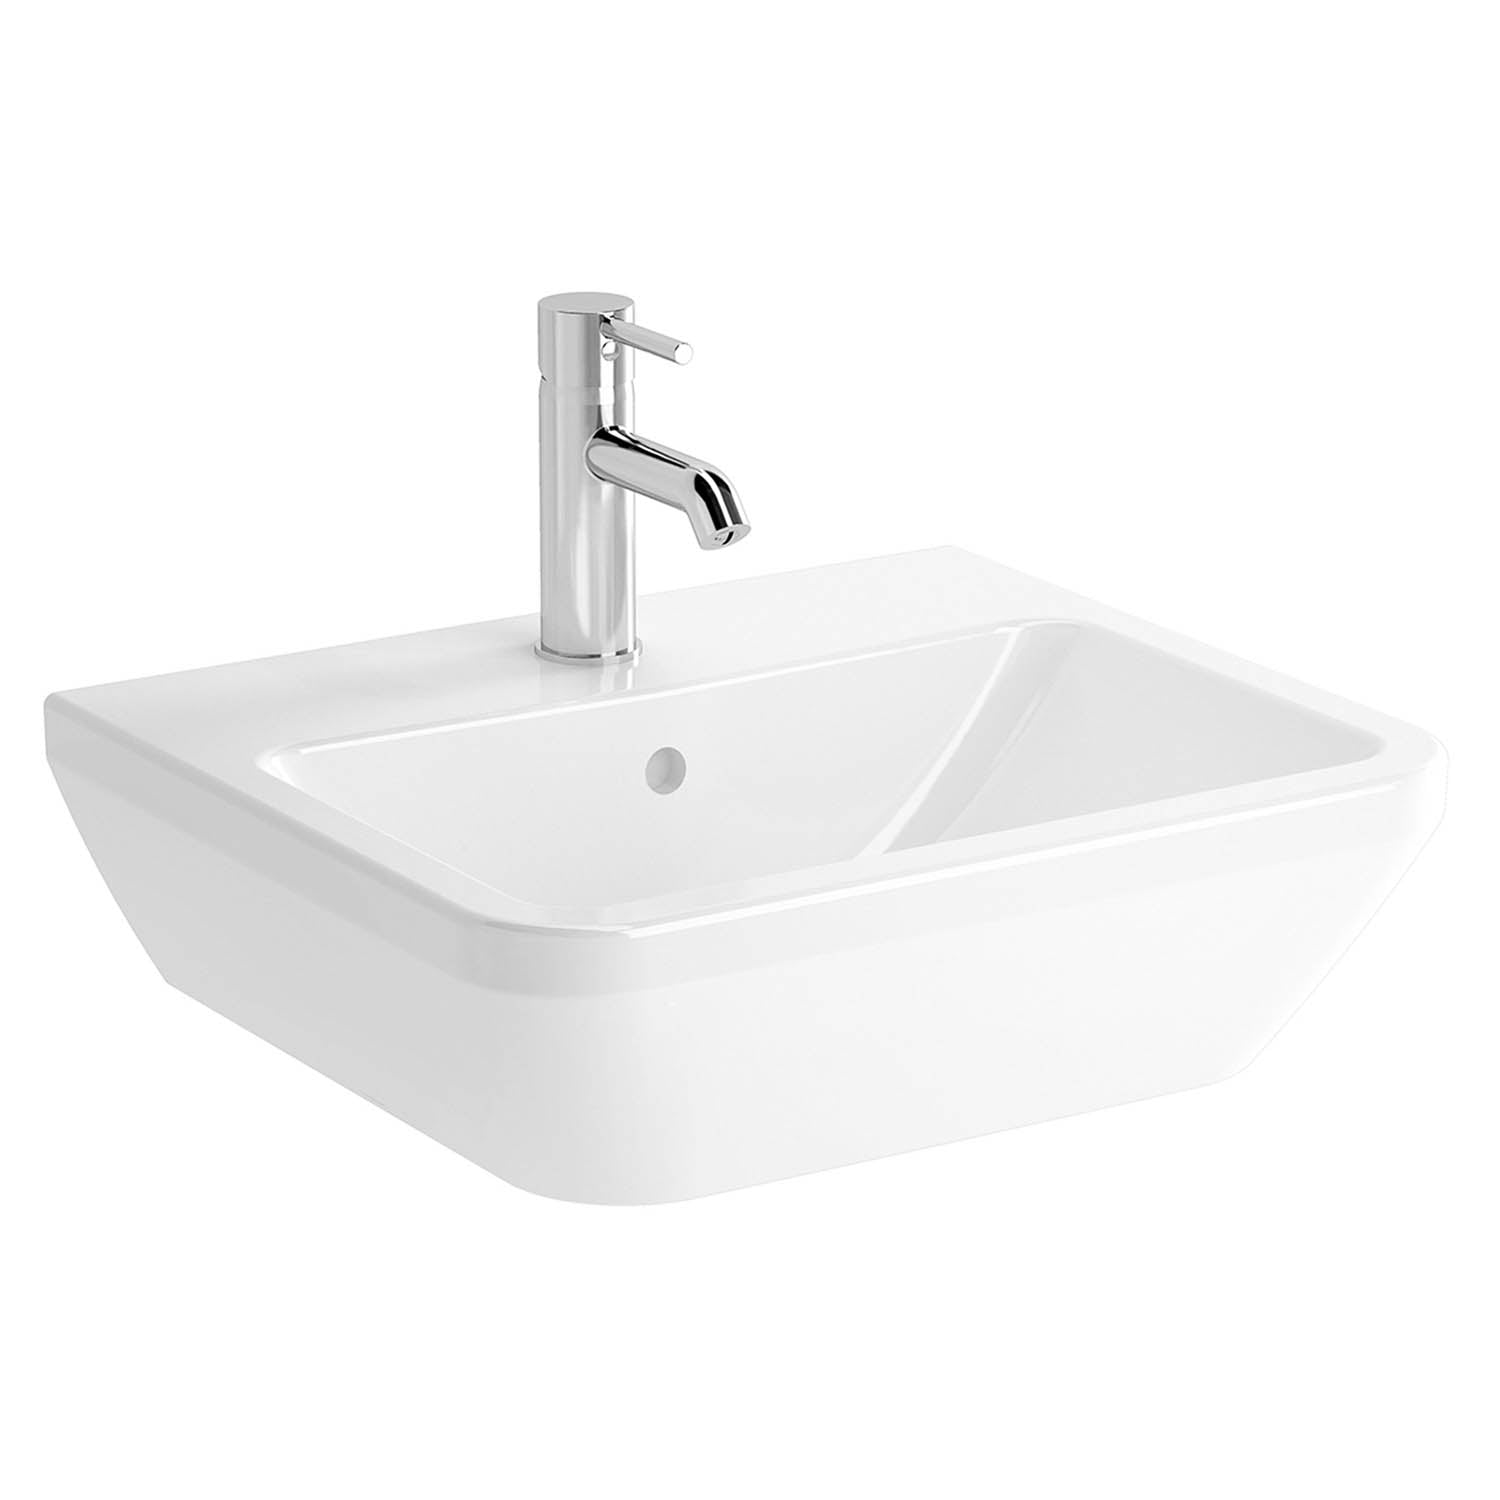 500mm Consilio Wall Hung Basin with one tap hole and an overflow on a white background